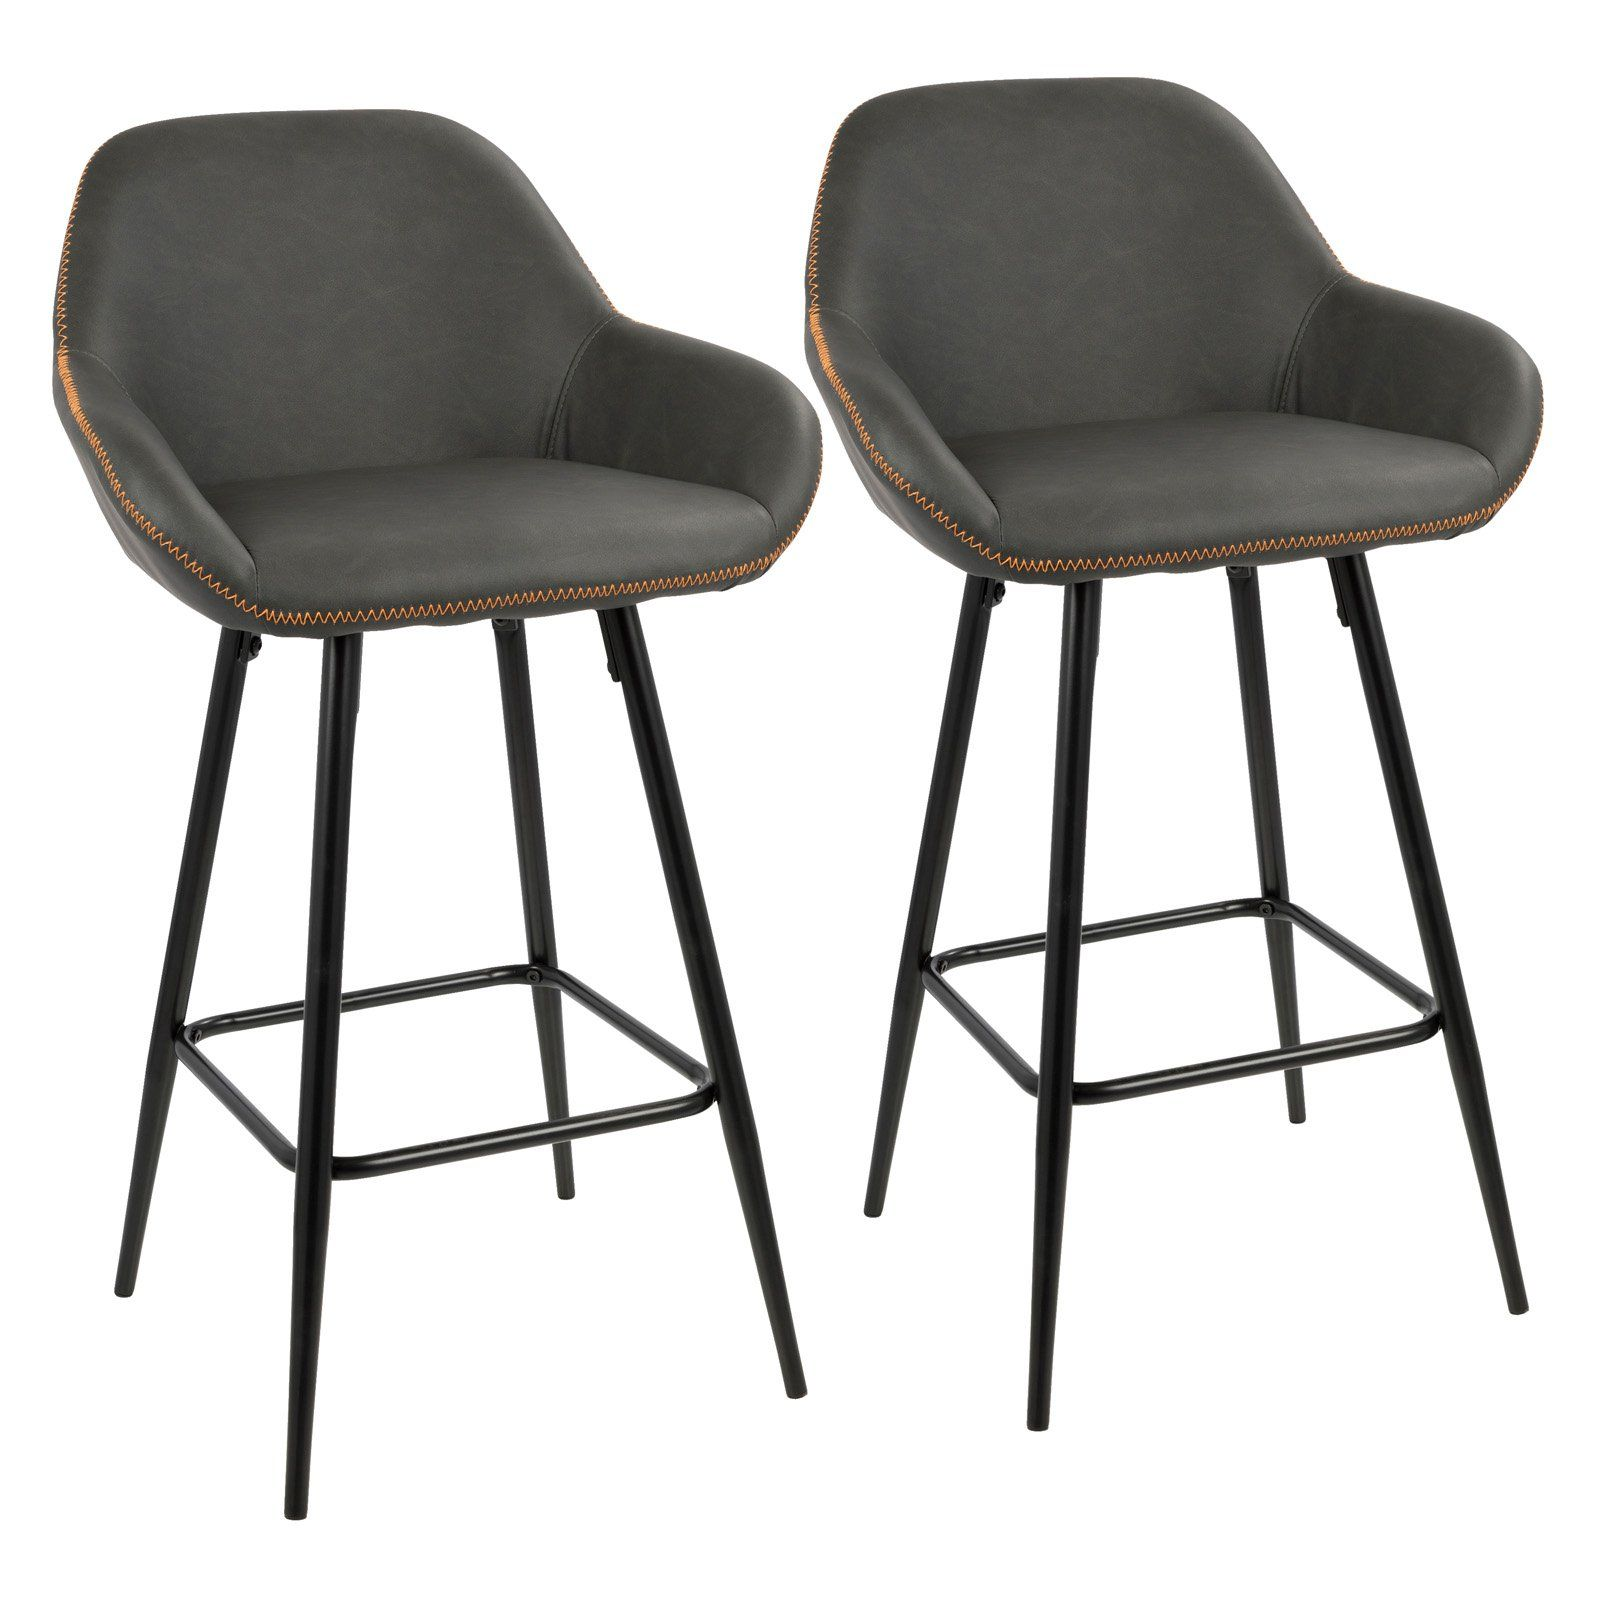 Lumisource Clubhouse 26 In Faux Leather Counter Stool Set Of 2